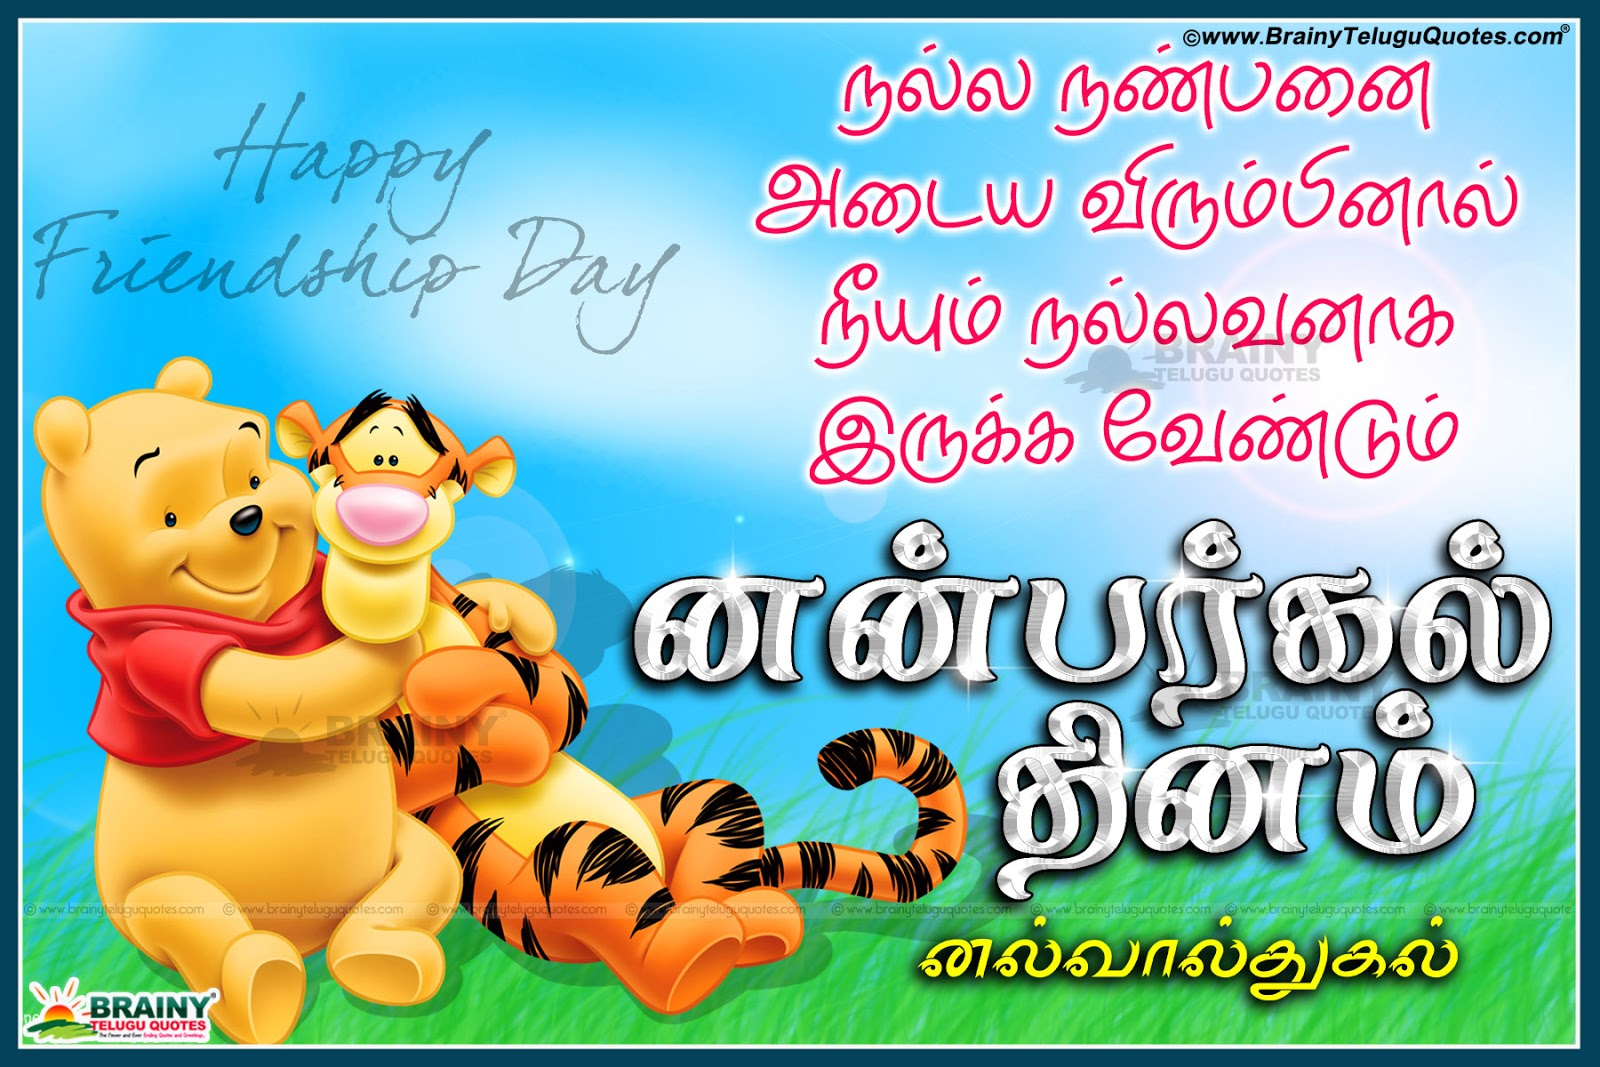 Friendship Day Latest Tamil Greetings and WhatsApp Wishes ...